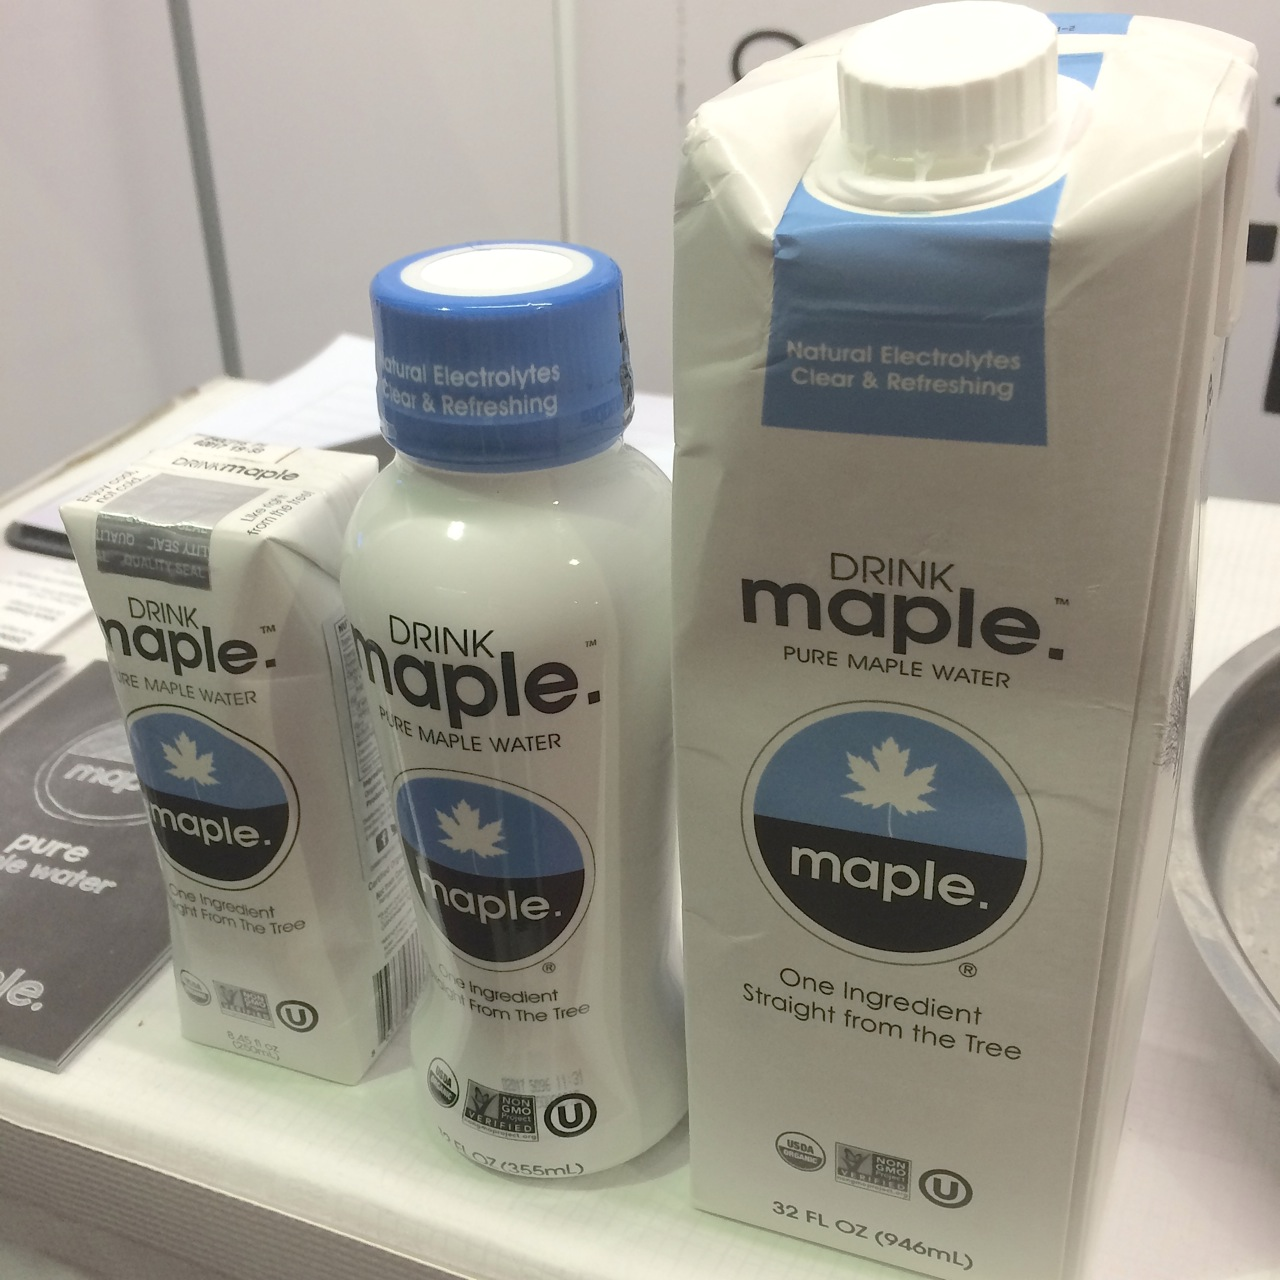 http://i1.wp.com/fatgayvegan.com/wp-content/uploads/2015/09/drink-maple.jpg?fit=1280%2C1280